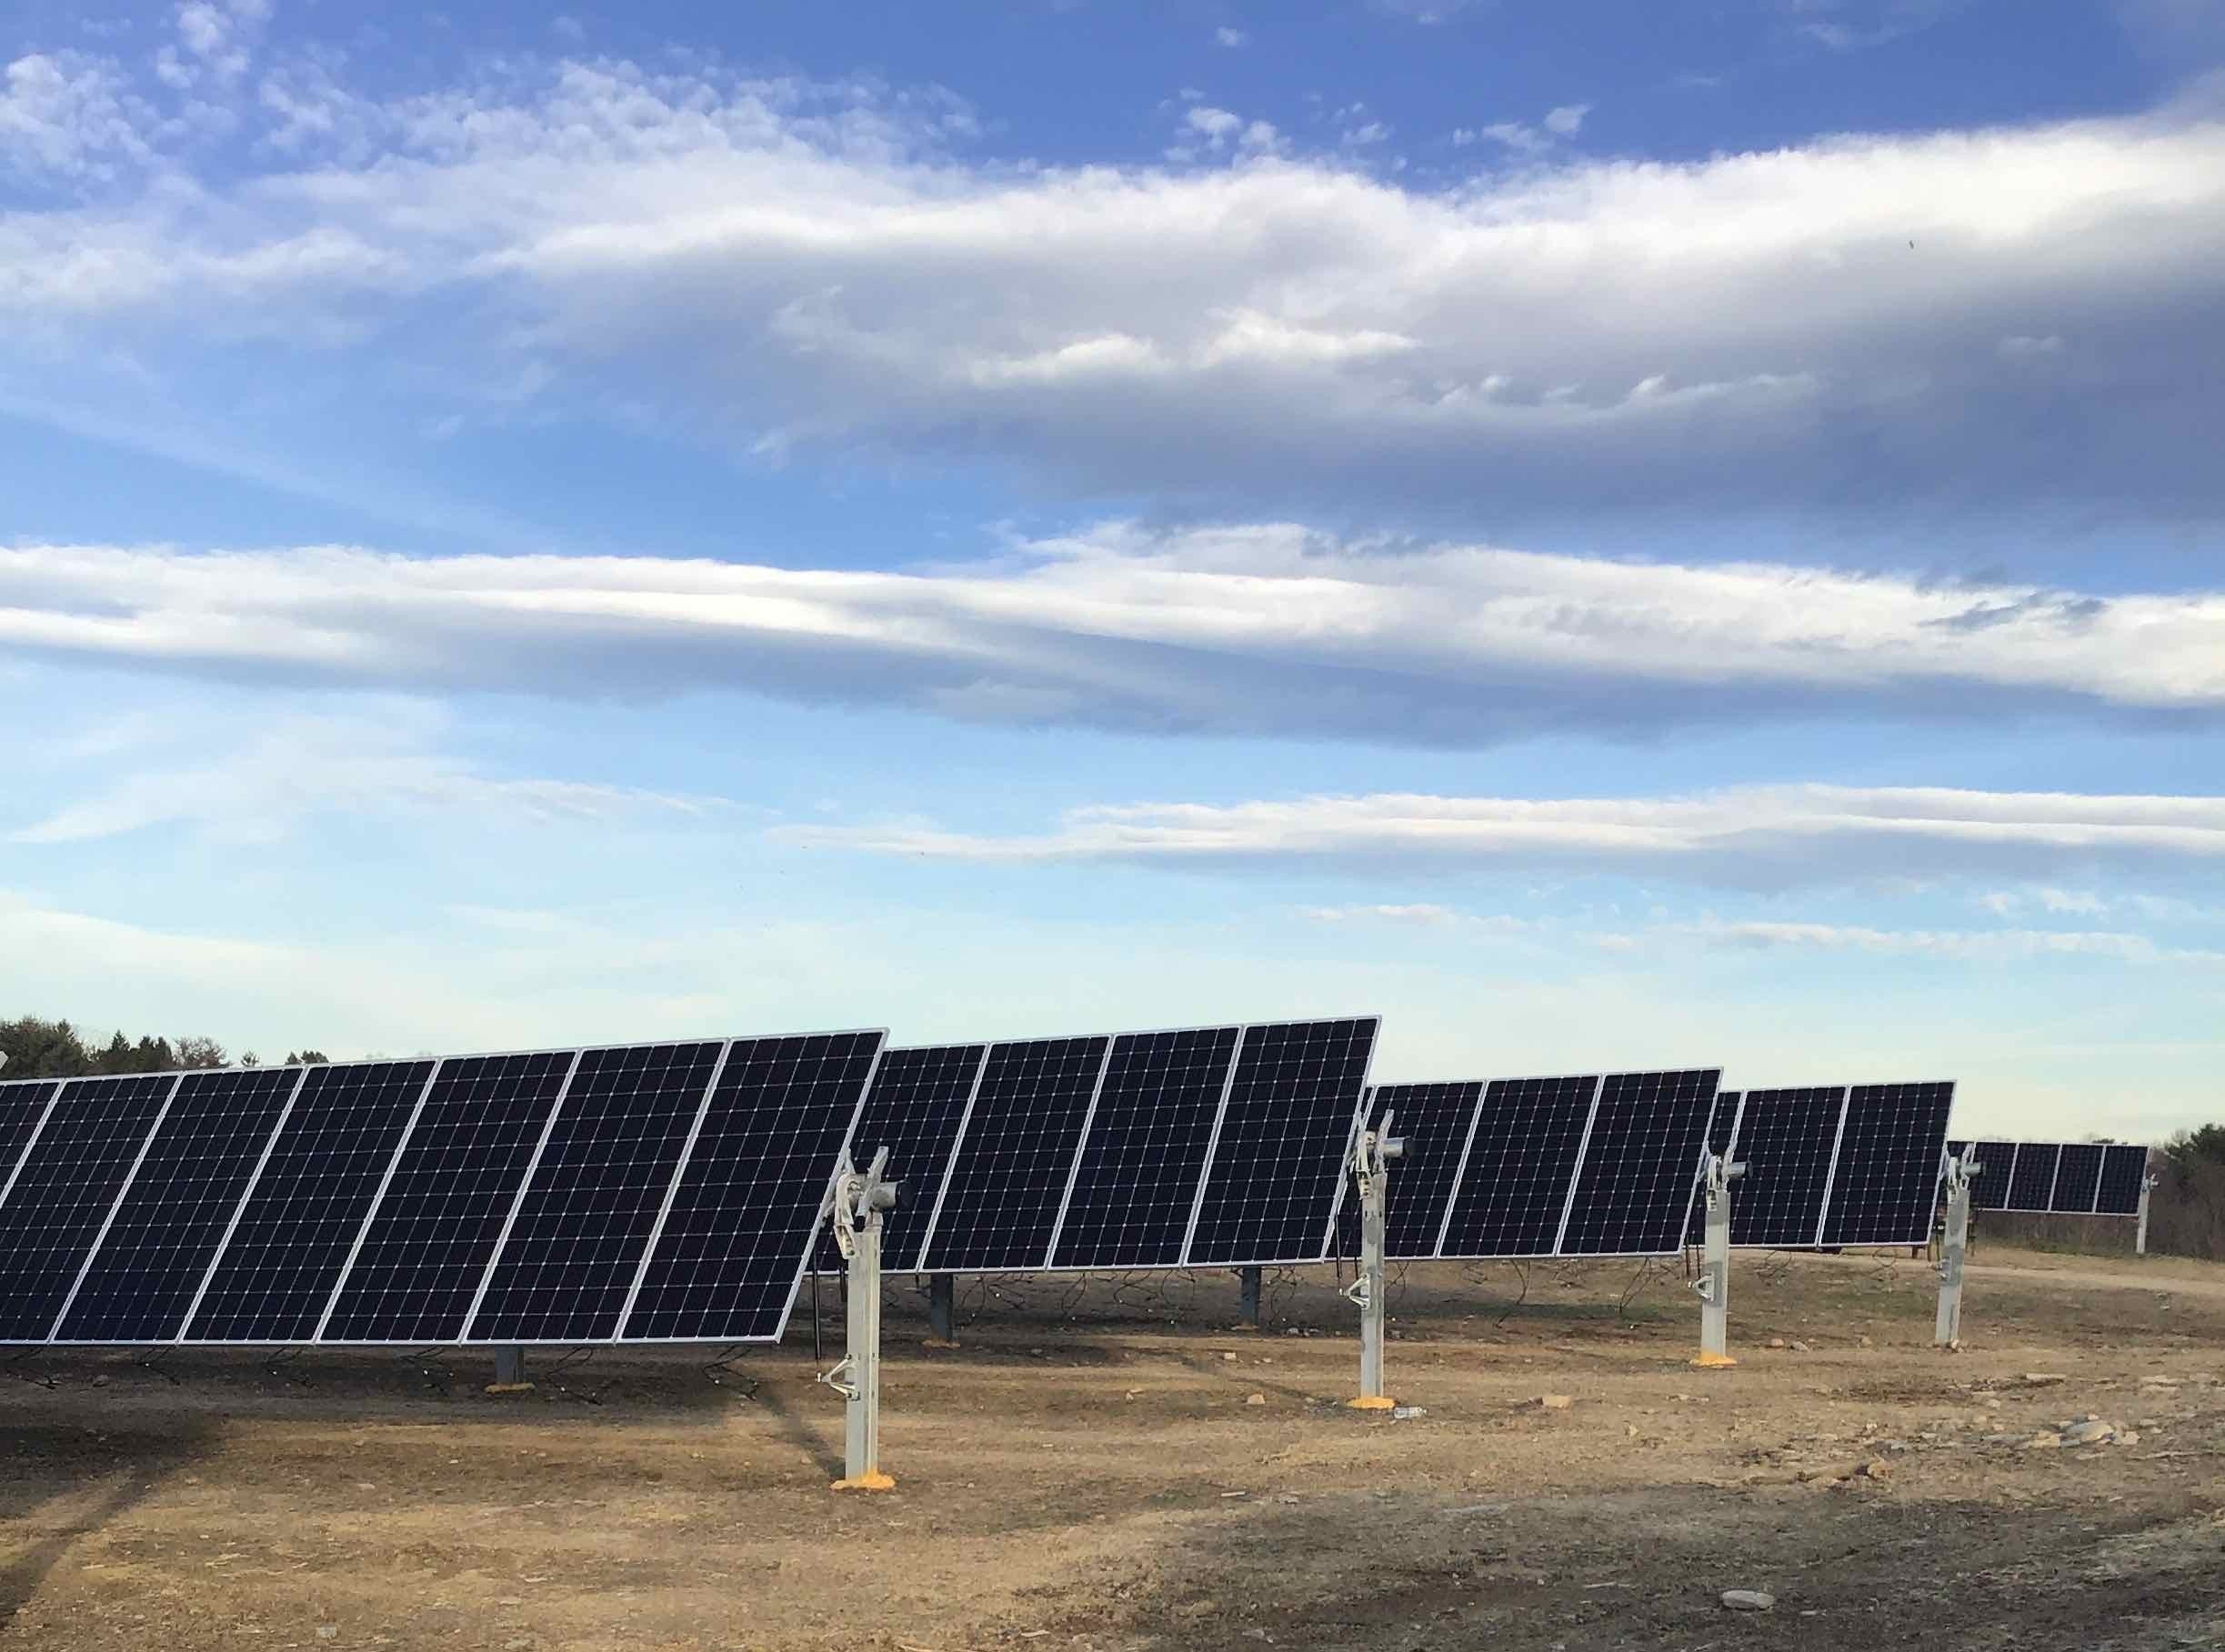 A community solar project funded by Generate and Starbucks provides clean power and energy storage capacity in Dutchess County, New York. Image credit: Cypress Creek Renewables